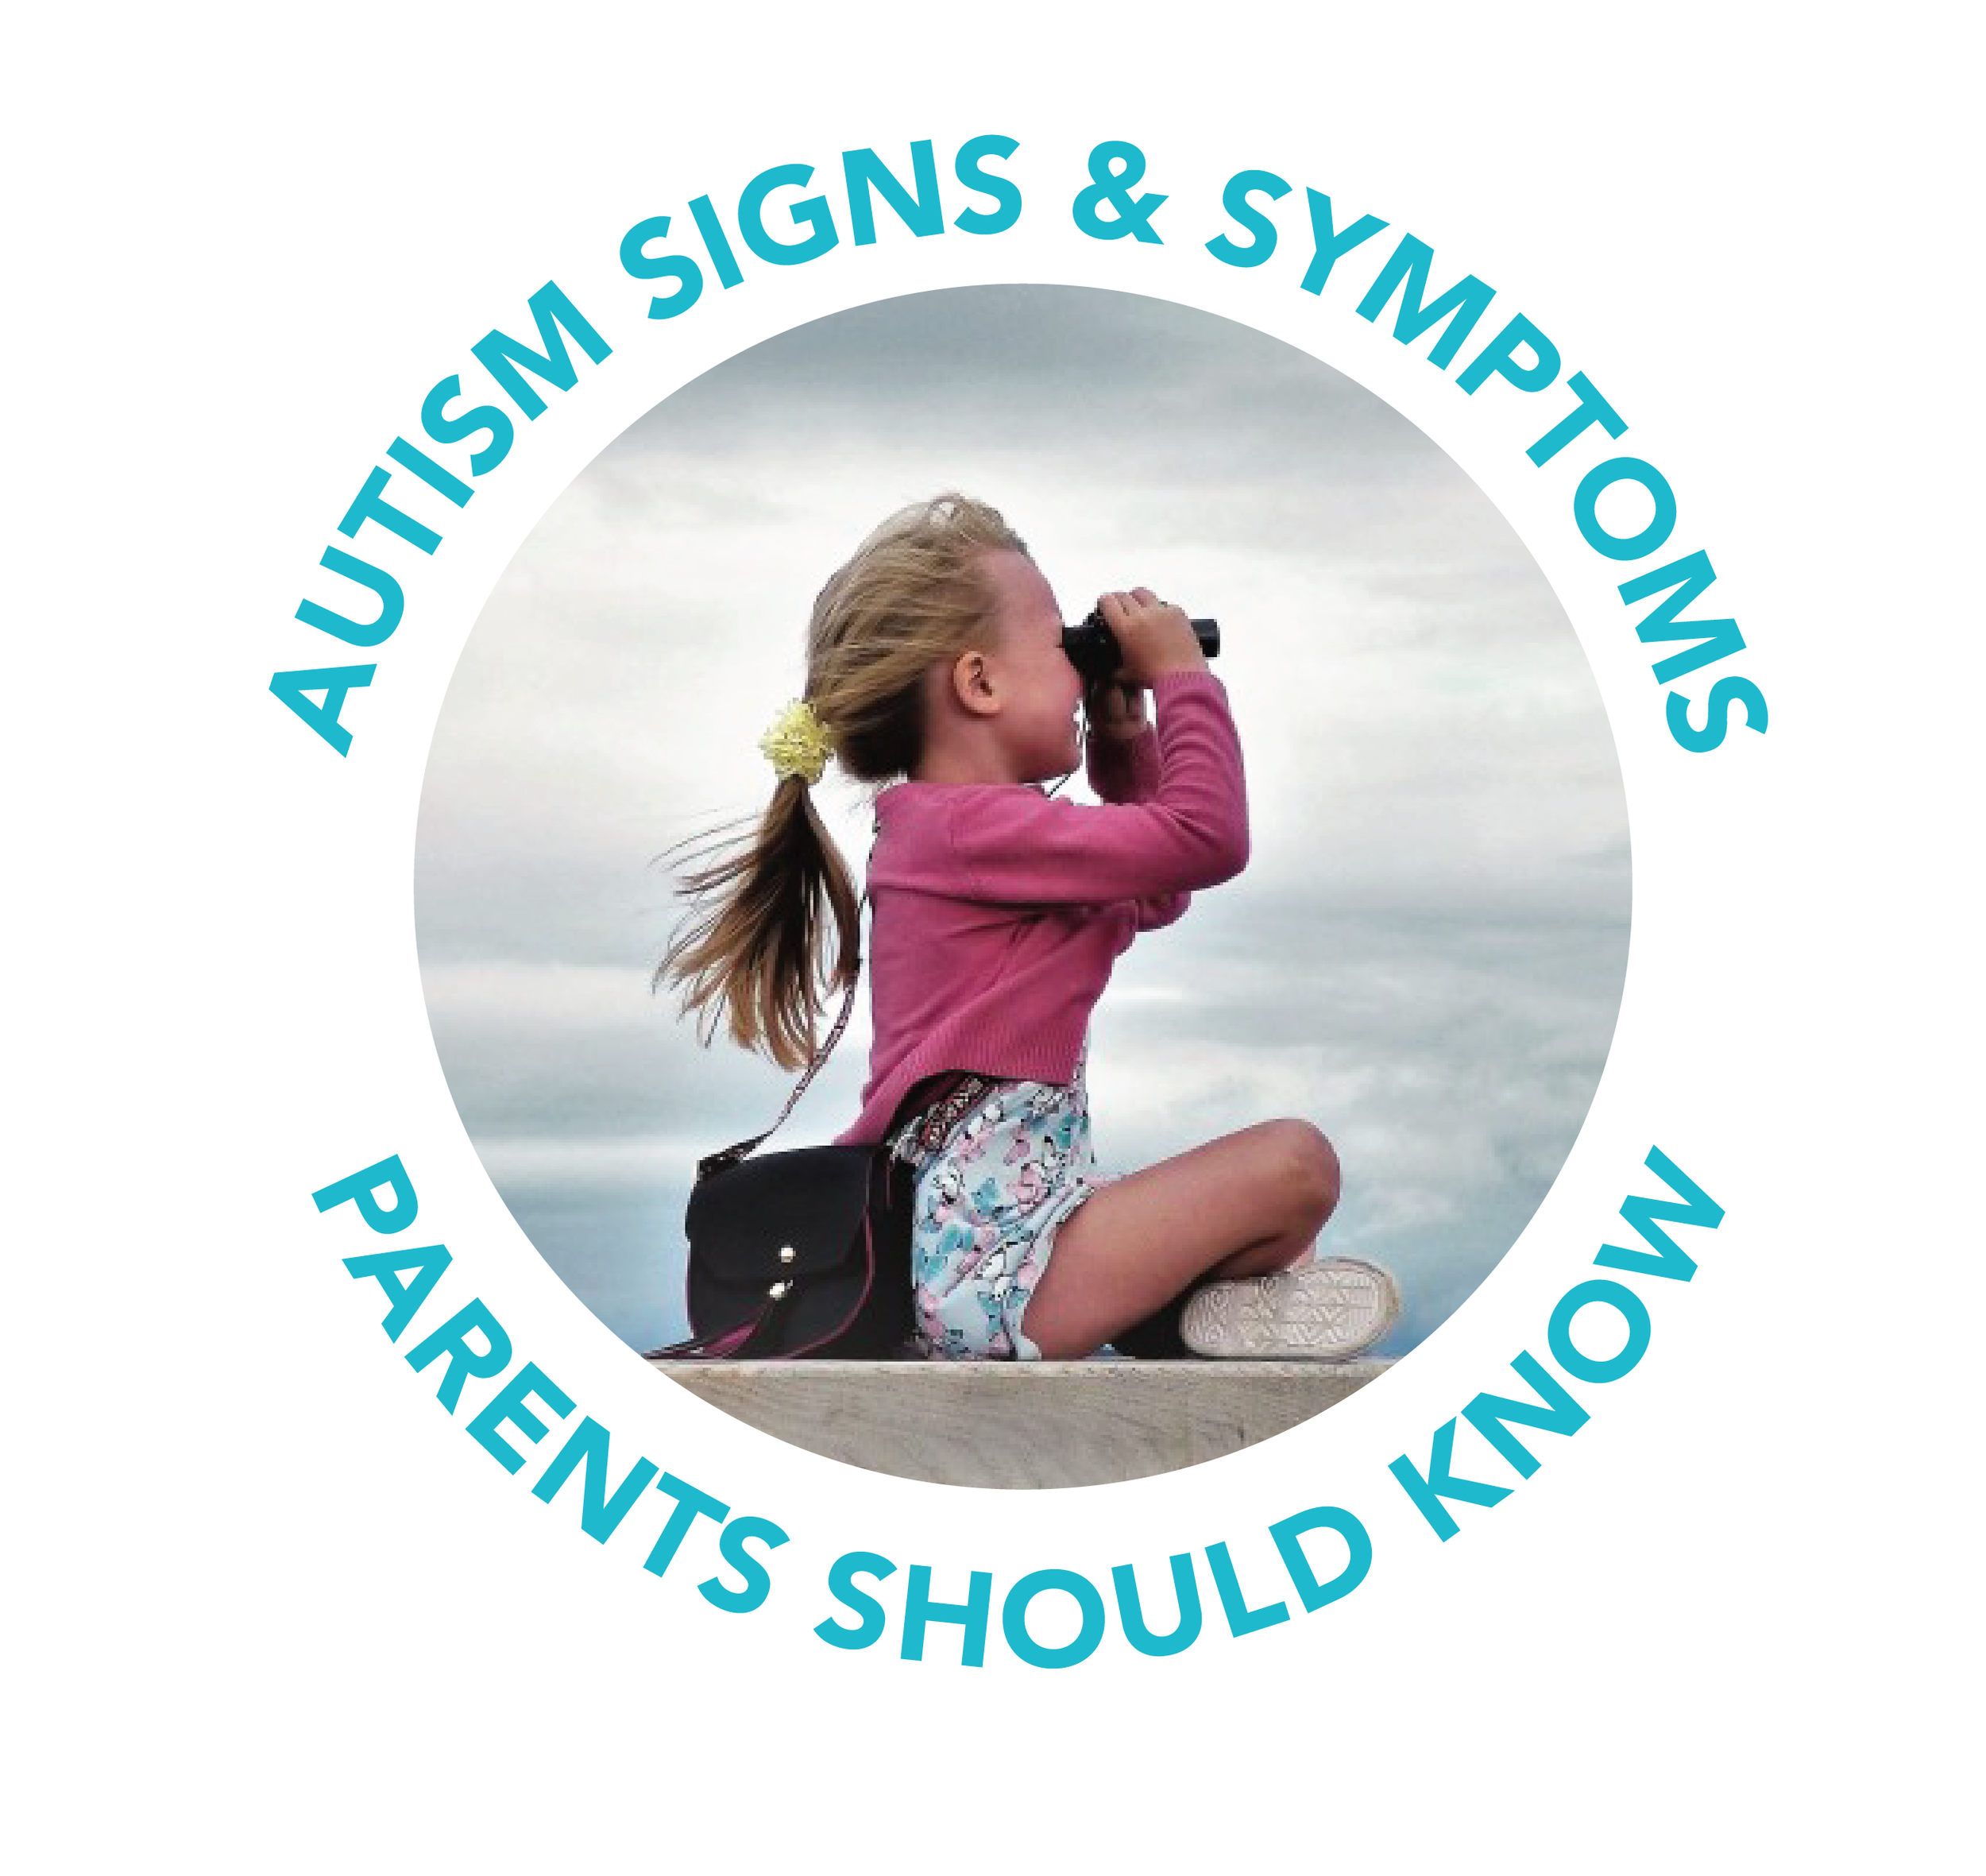 Autism Signs and Symptoms - What Parents Need to Know